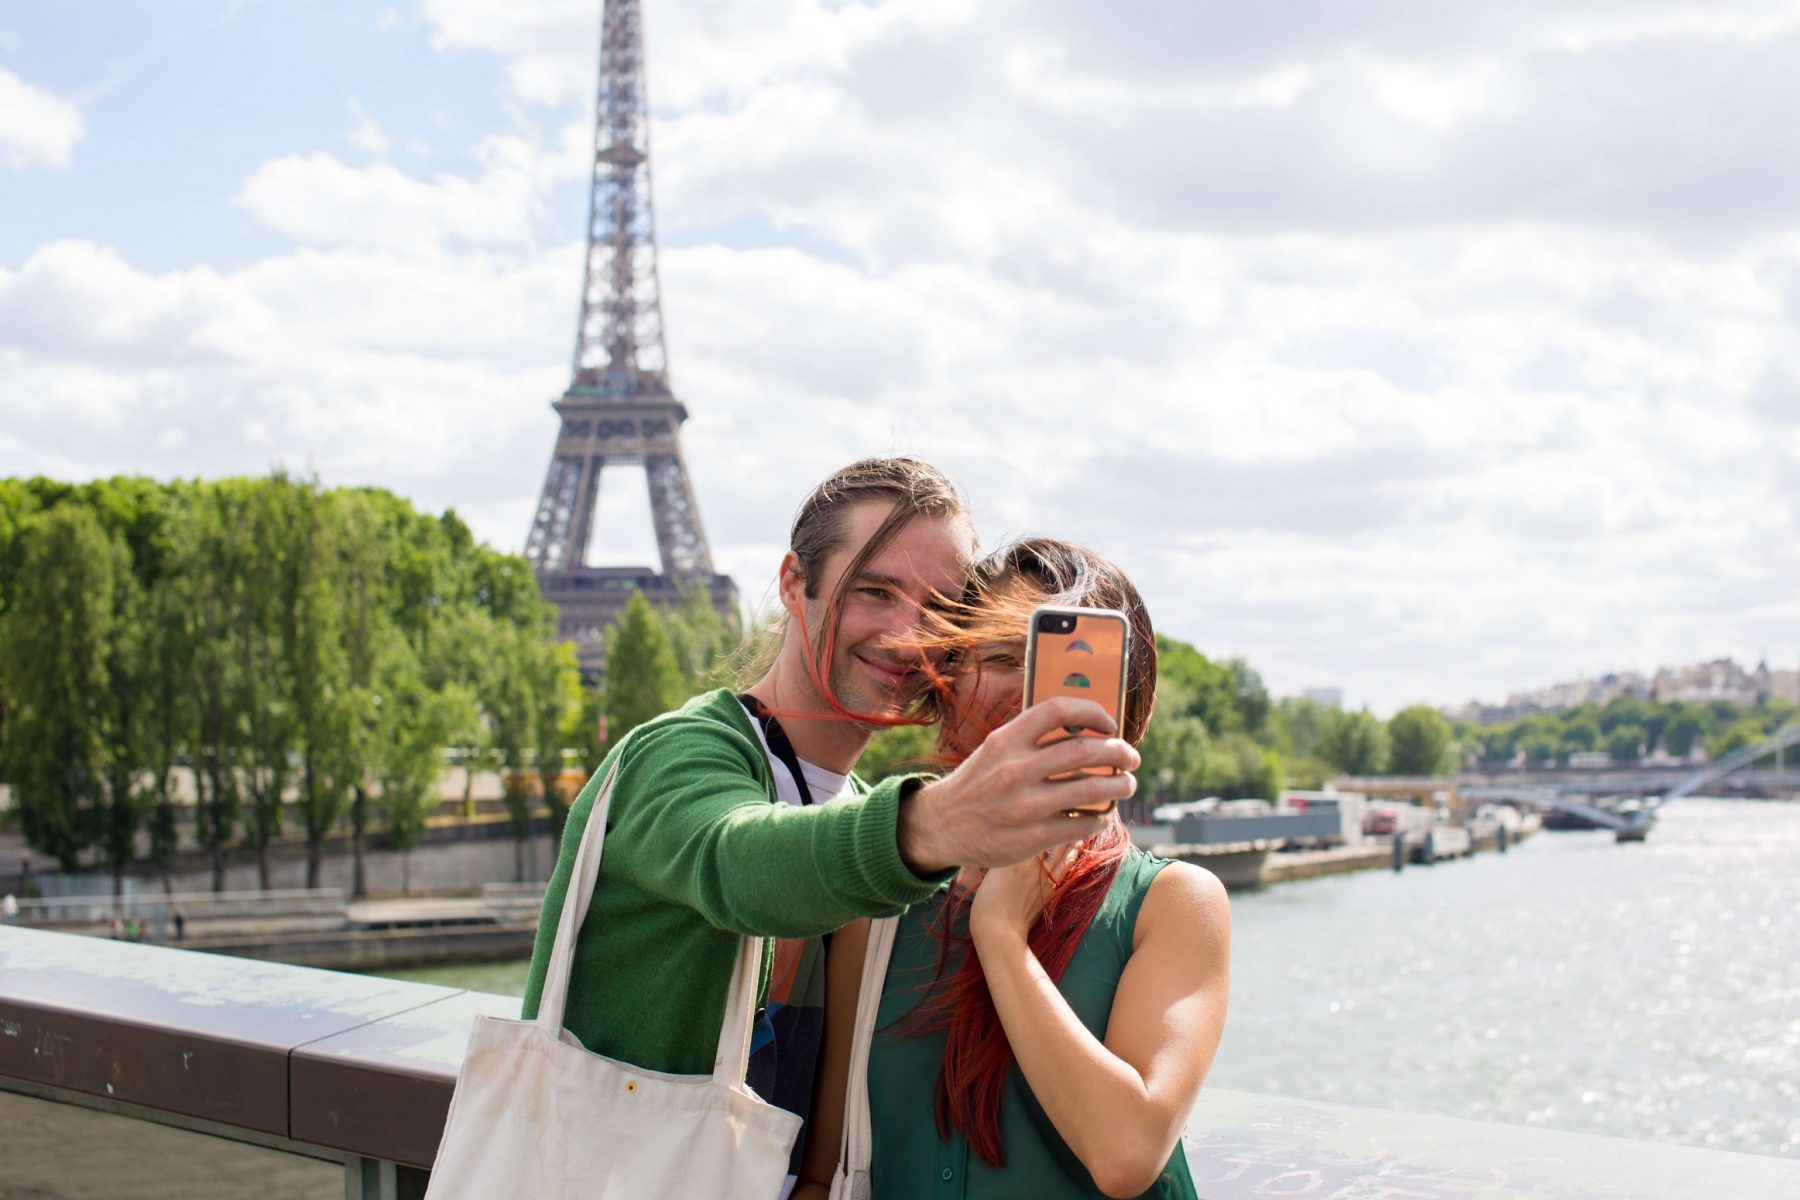 How to Not Look Like a Tourist — Actually, I Don't Care… I Am a Tourist!